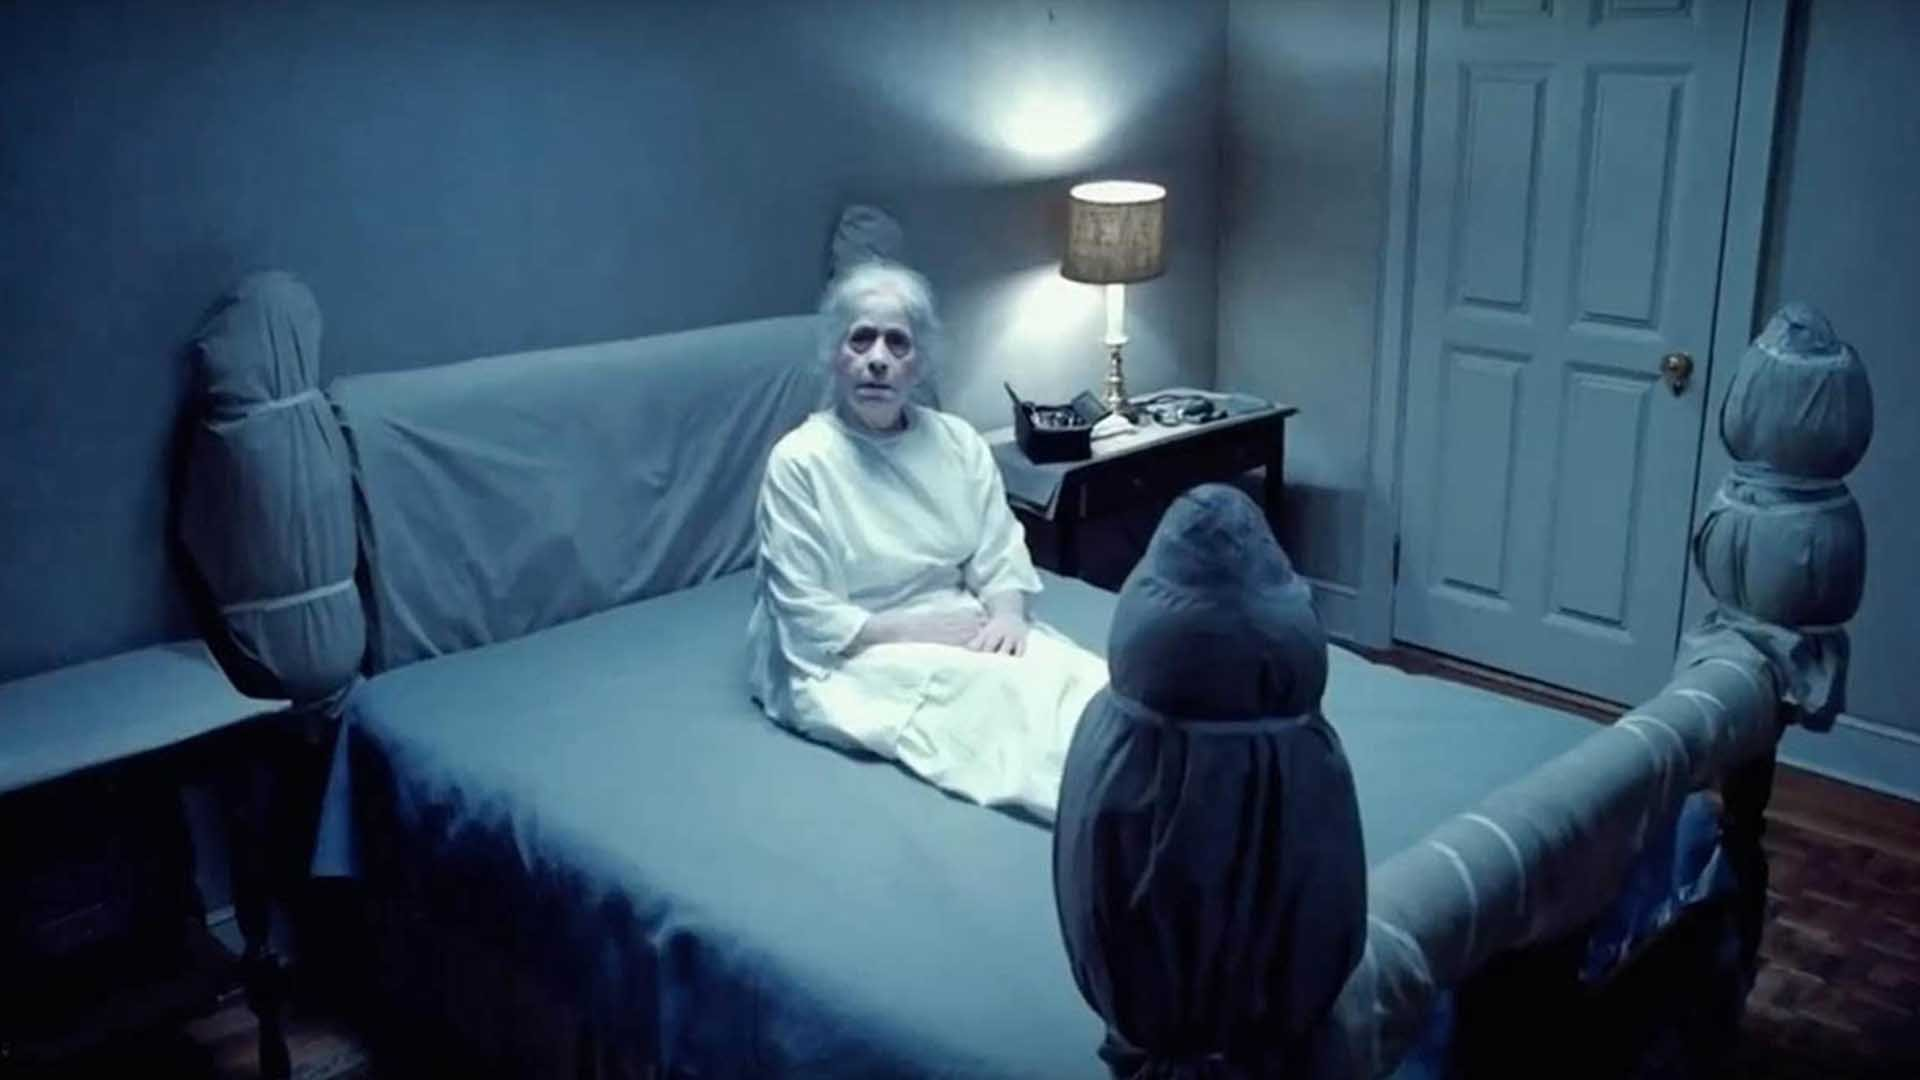 Lonely old woman on the bed in The Exorcist